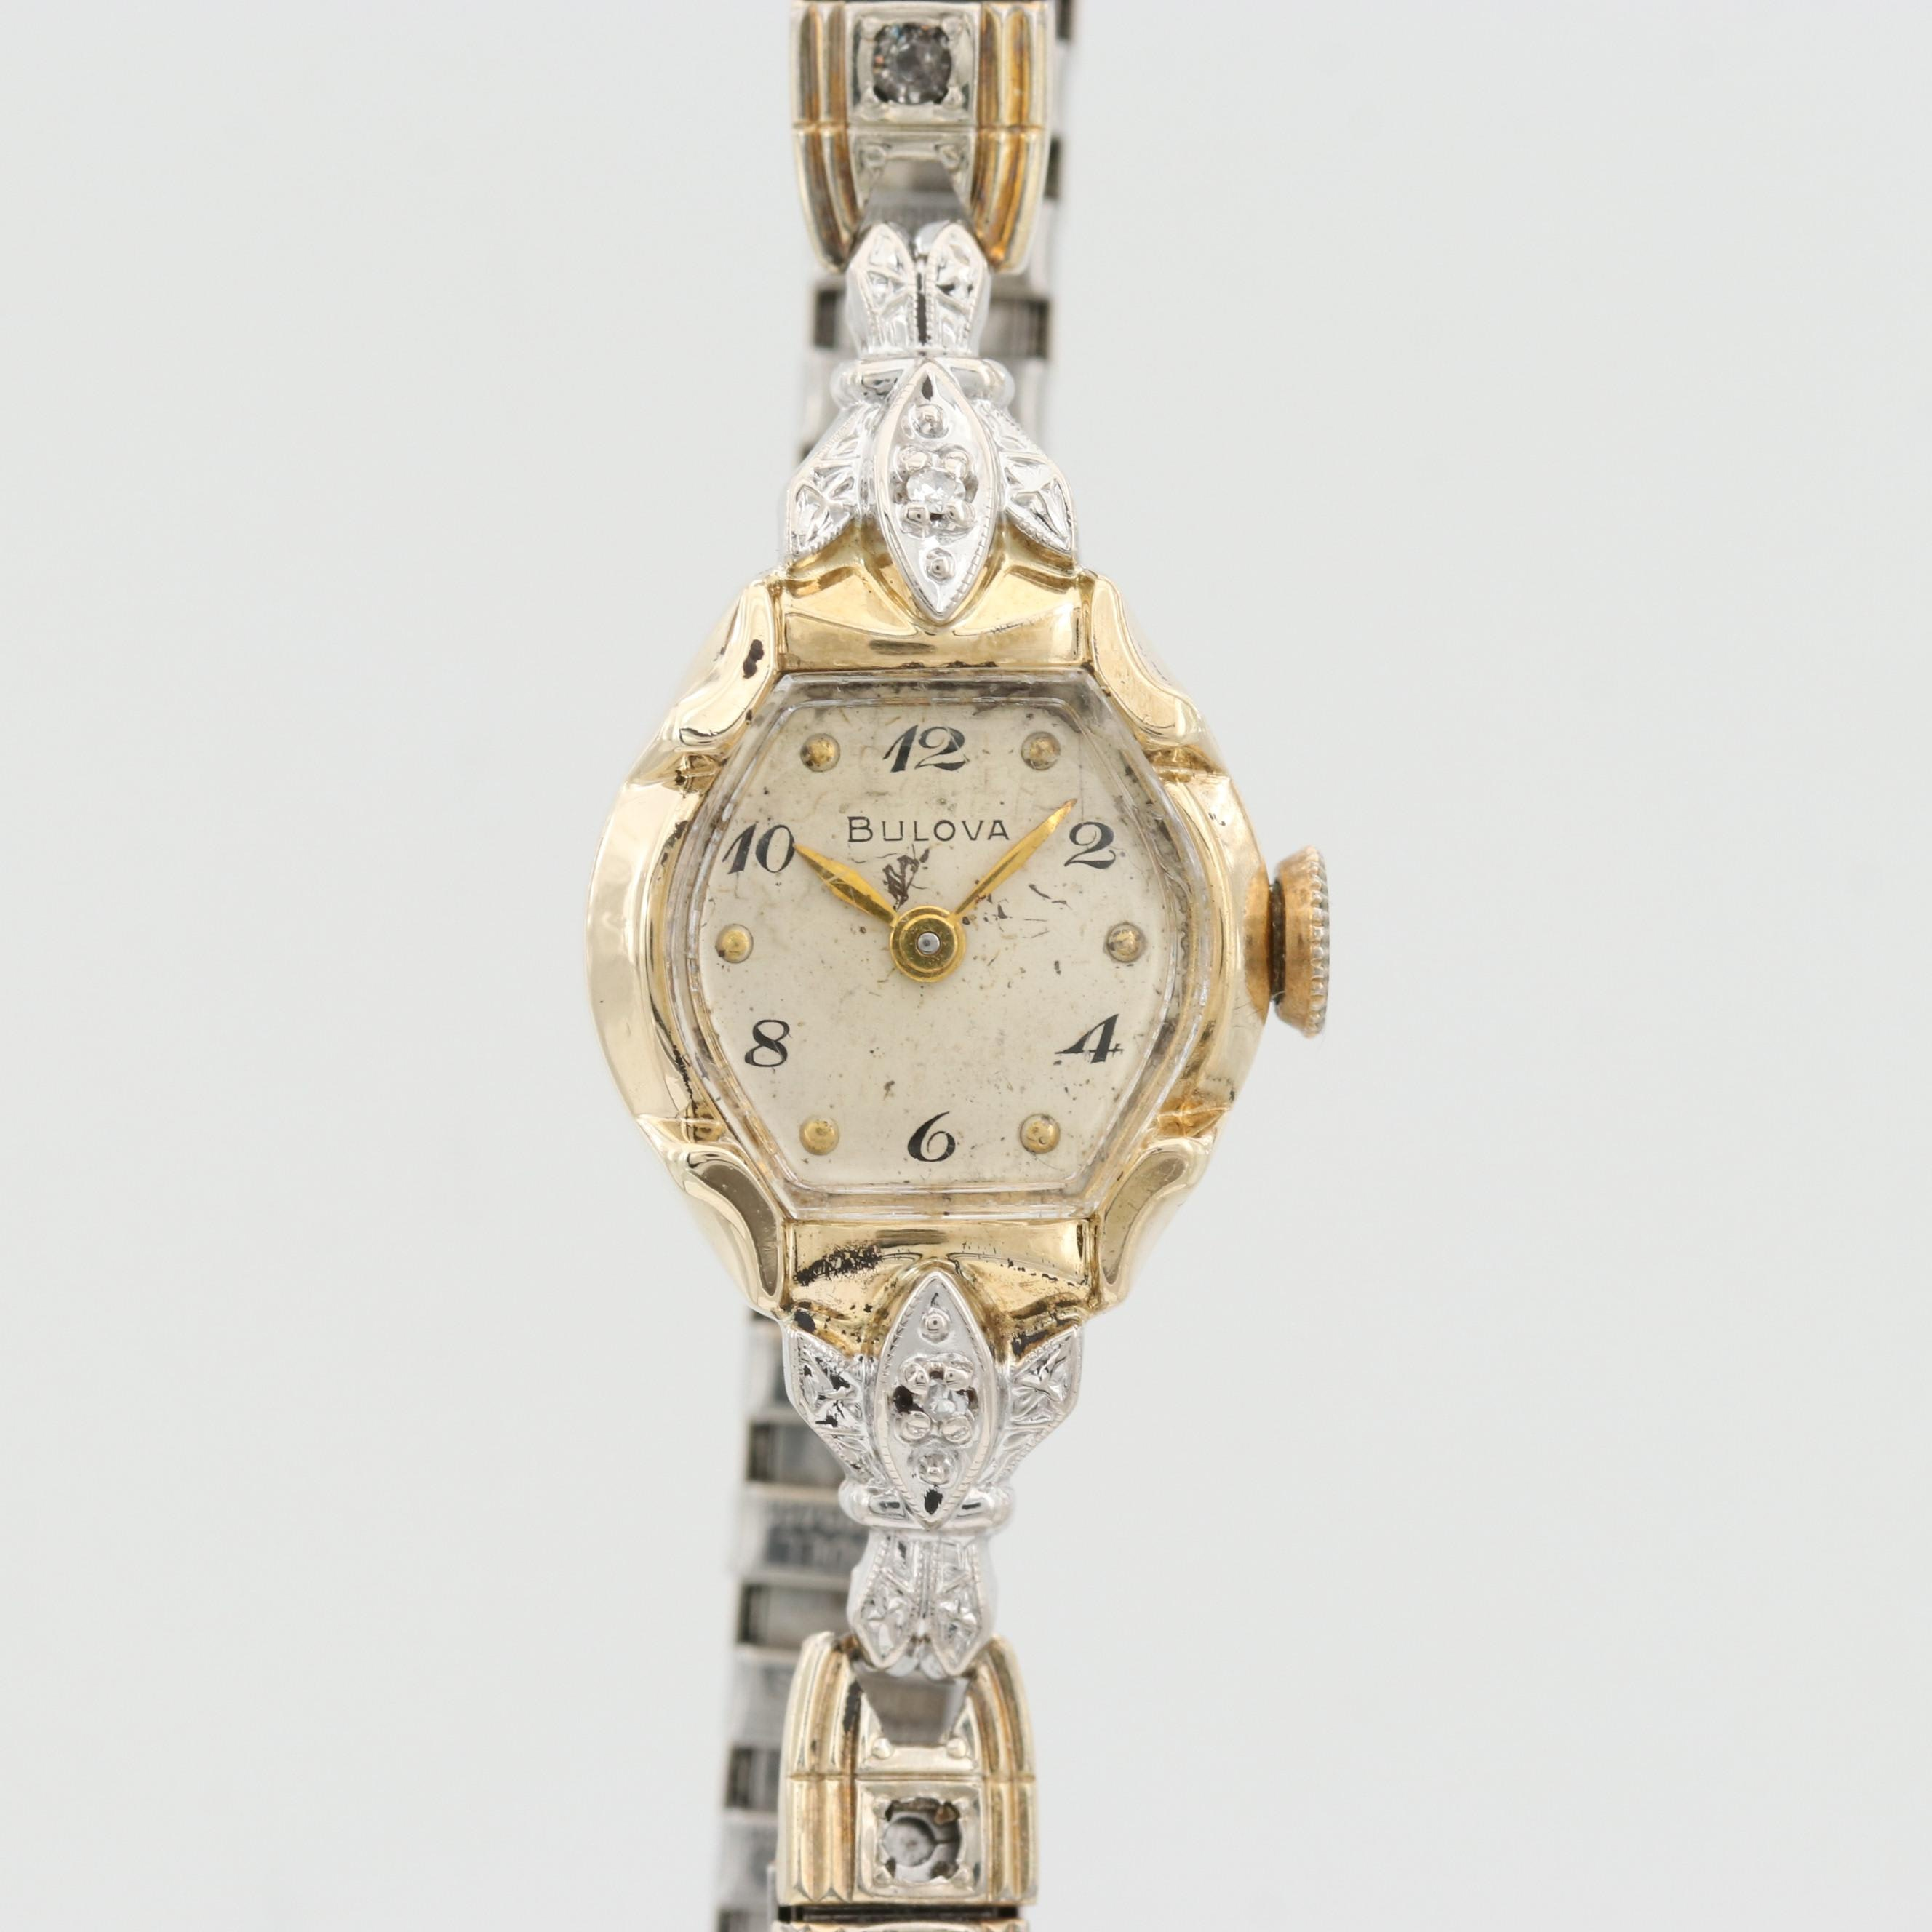 Bulova 14K Yellow Gold and Diamond Wristwatch With Glass Crystal Accents